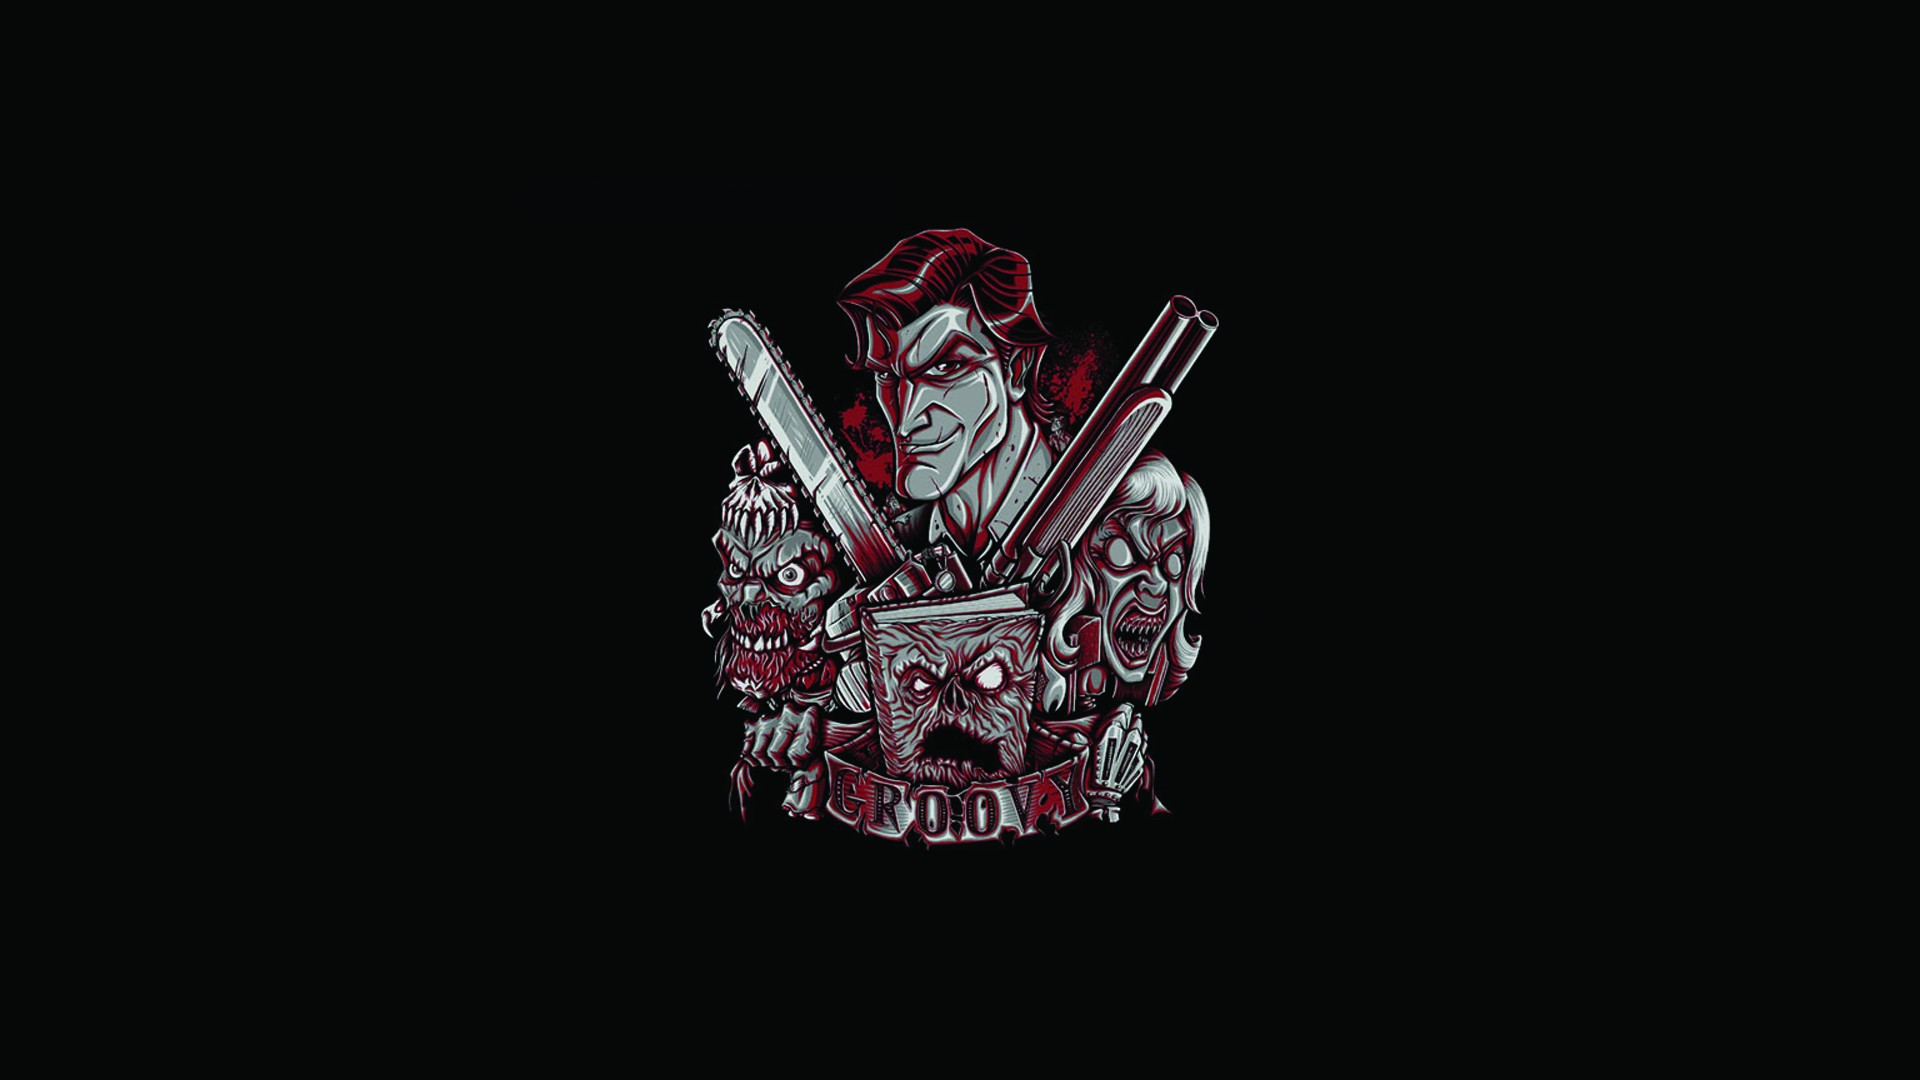 Evil Dead Wallpapers HD - WallpaperSafari